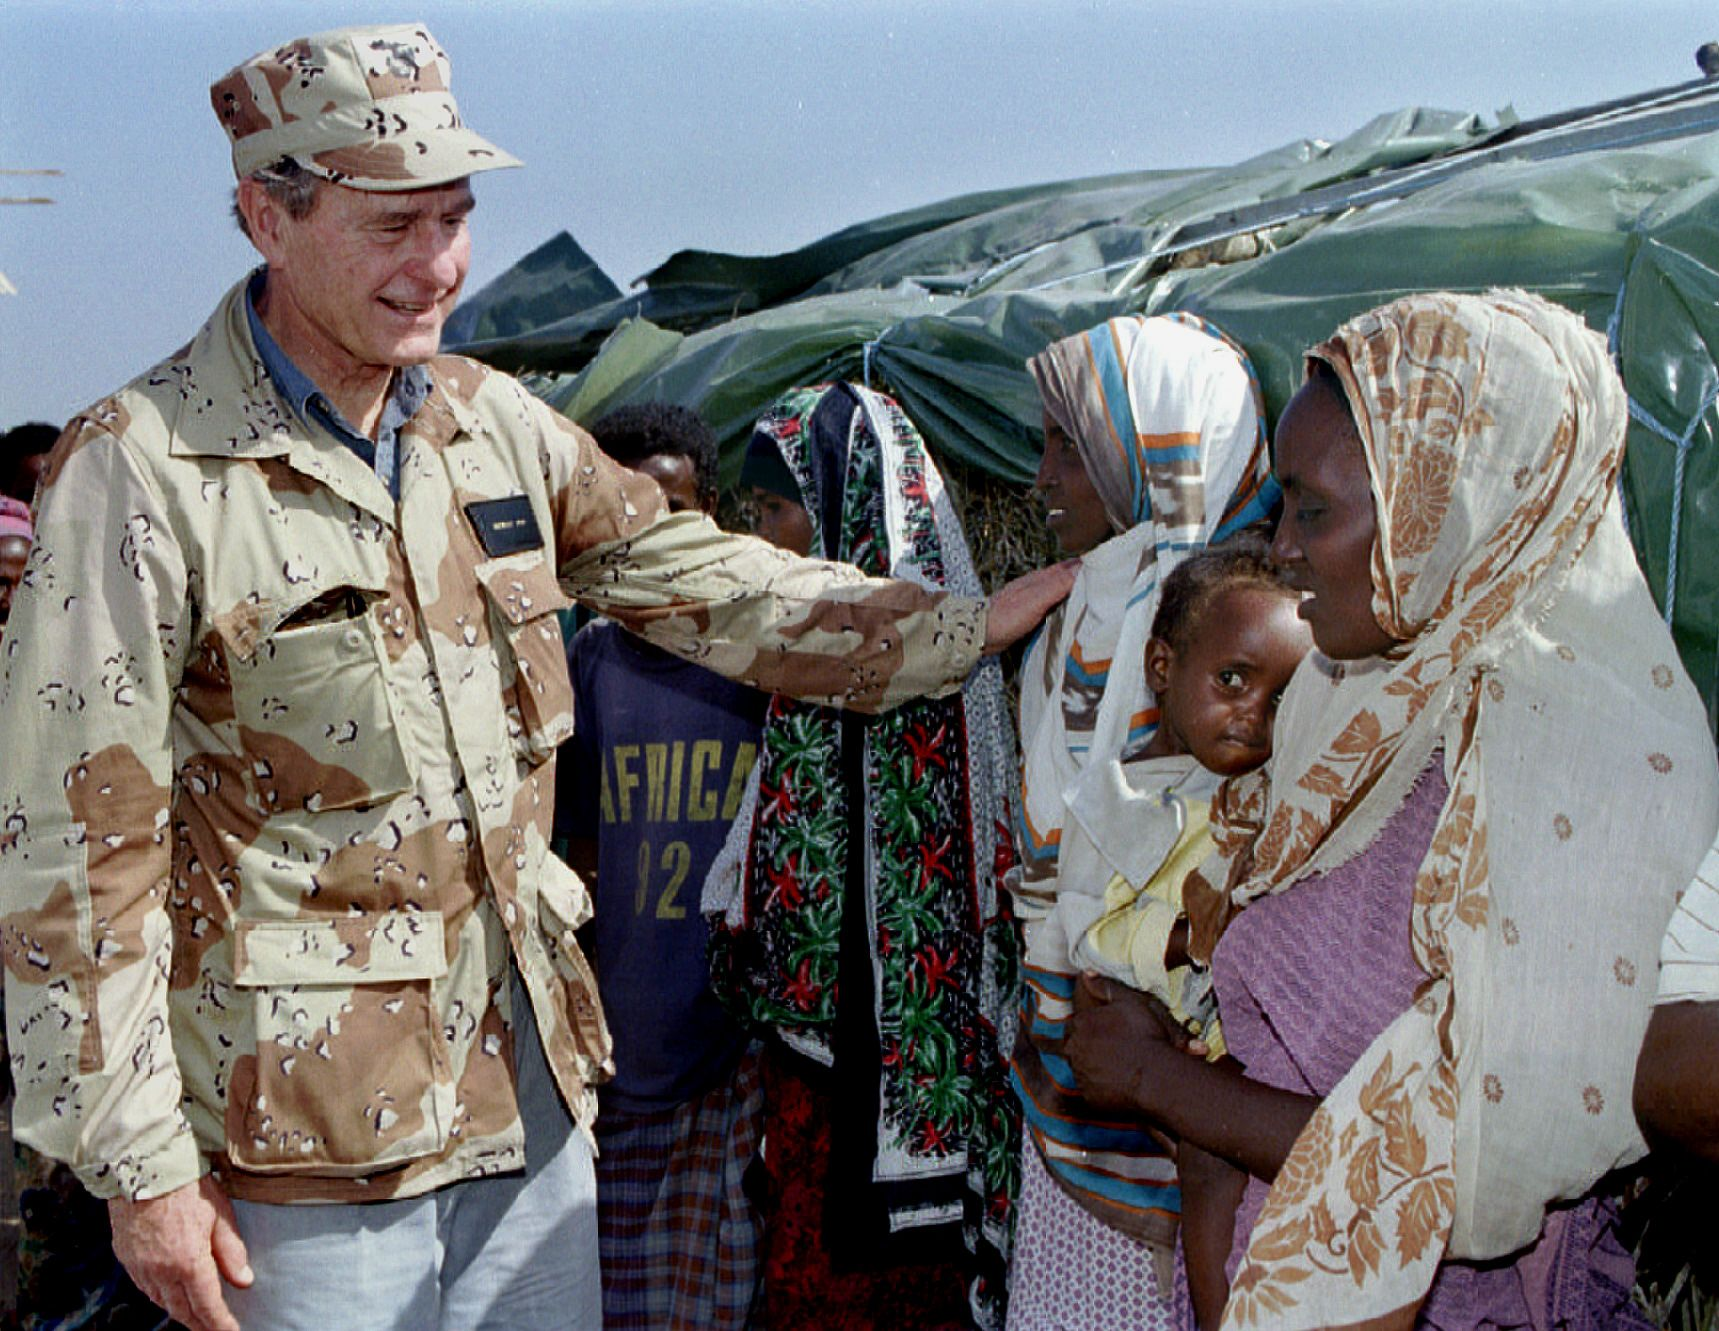 humanitarian intervention in somalia The united states army in somalia 1992-1994  americans consider themselves to be a compassionate people, and the united states army has a long tradition of humanitarian relief operations both within and outside the continental united states.